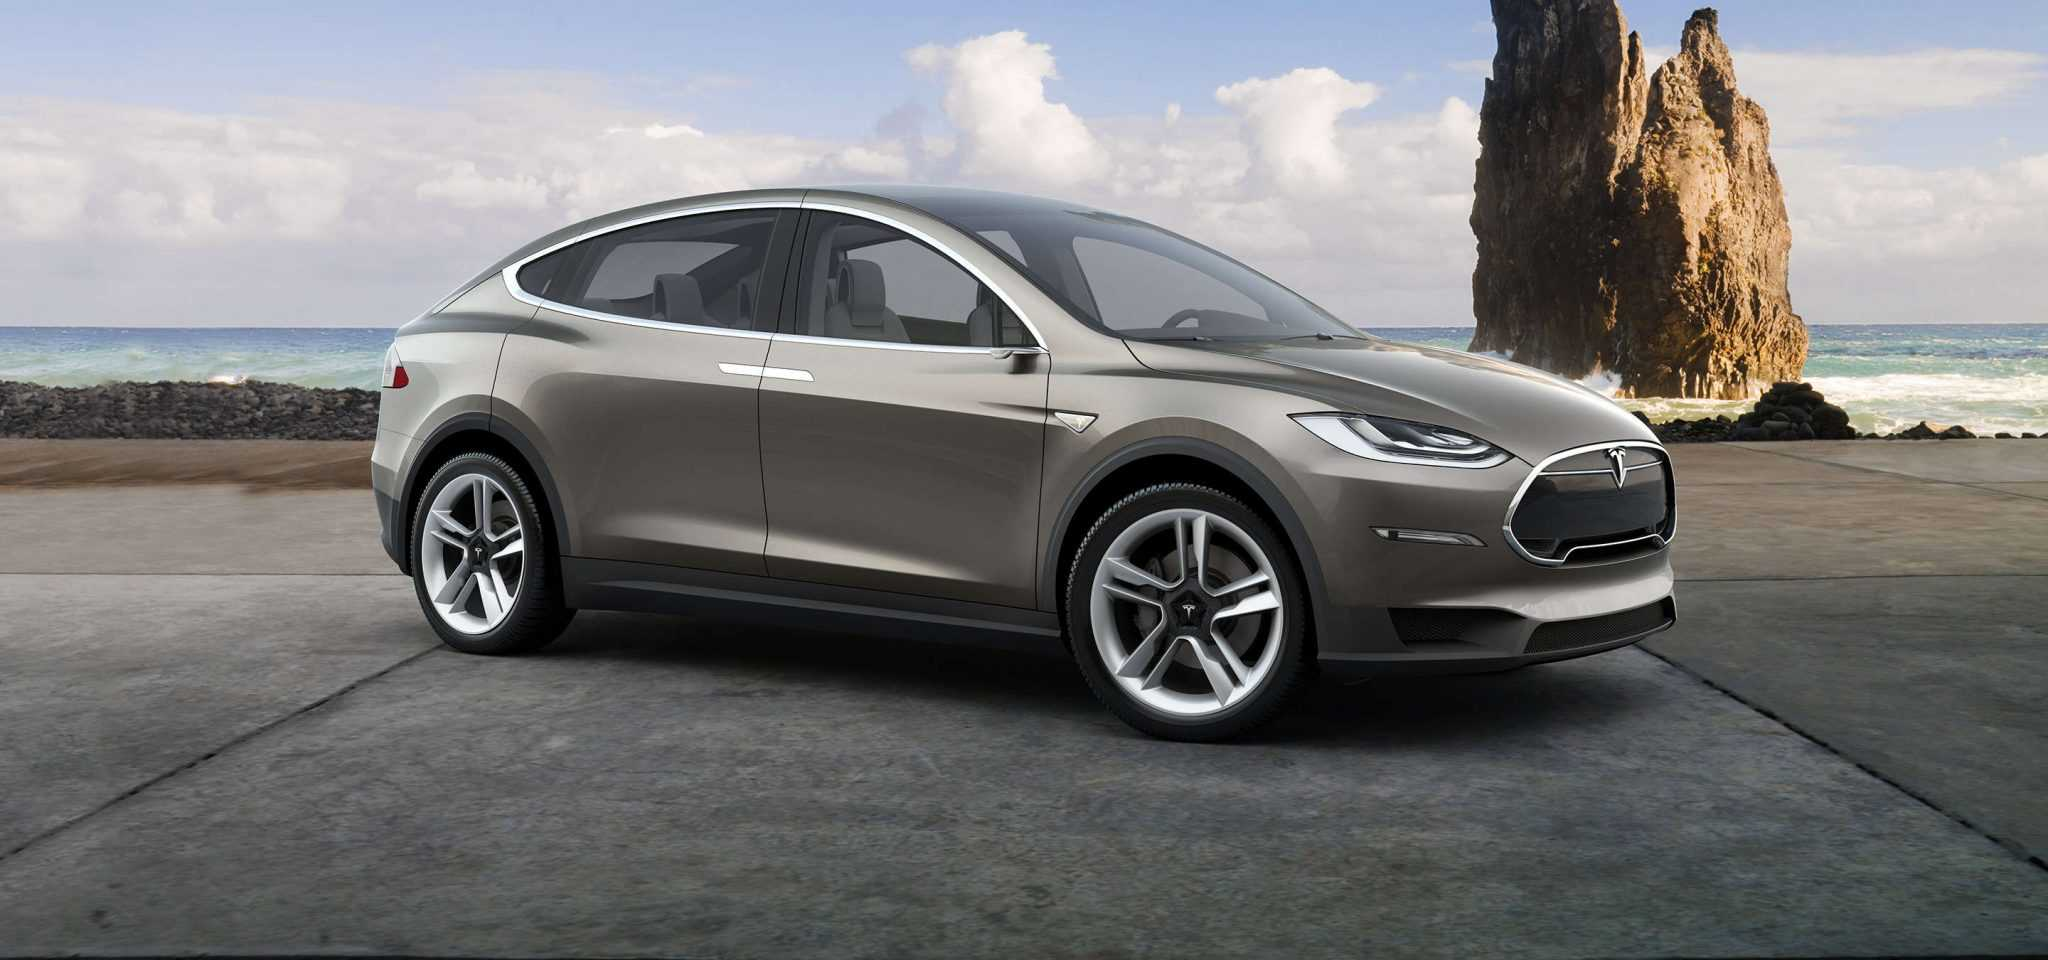 Is Tesla Model X Doomed? New Survey Shows Lack of Interest for Electric Vehicles